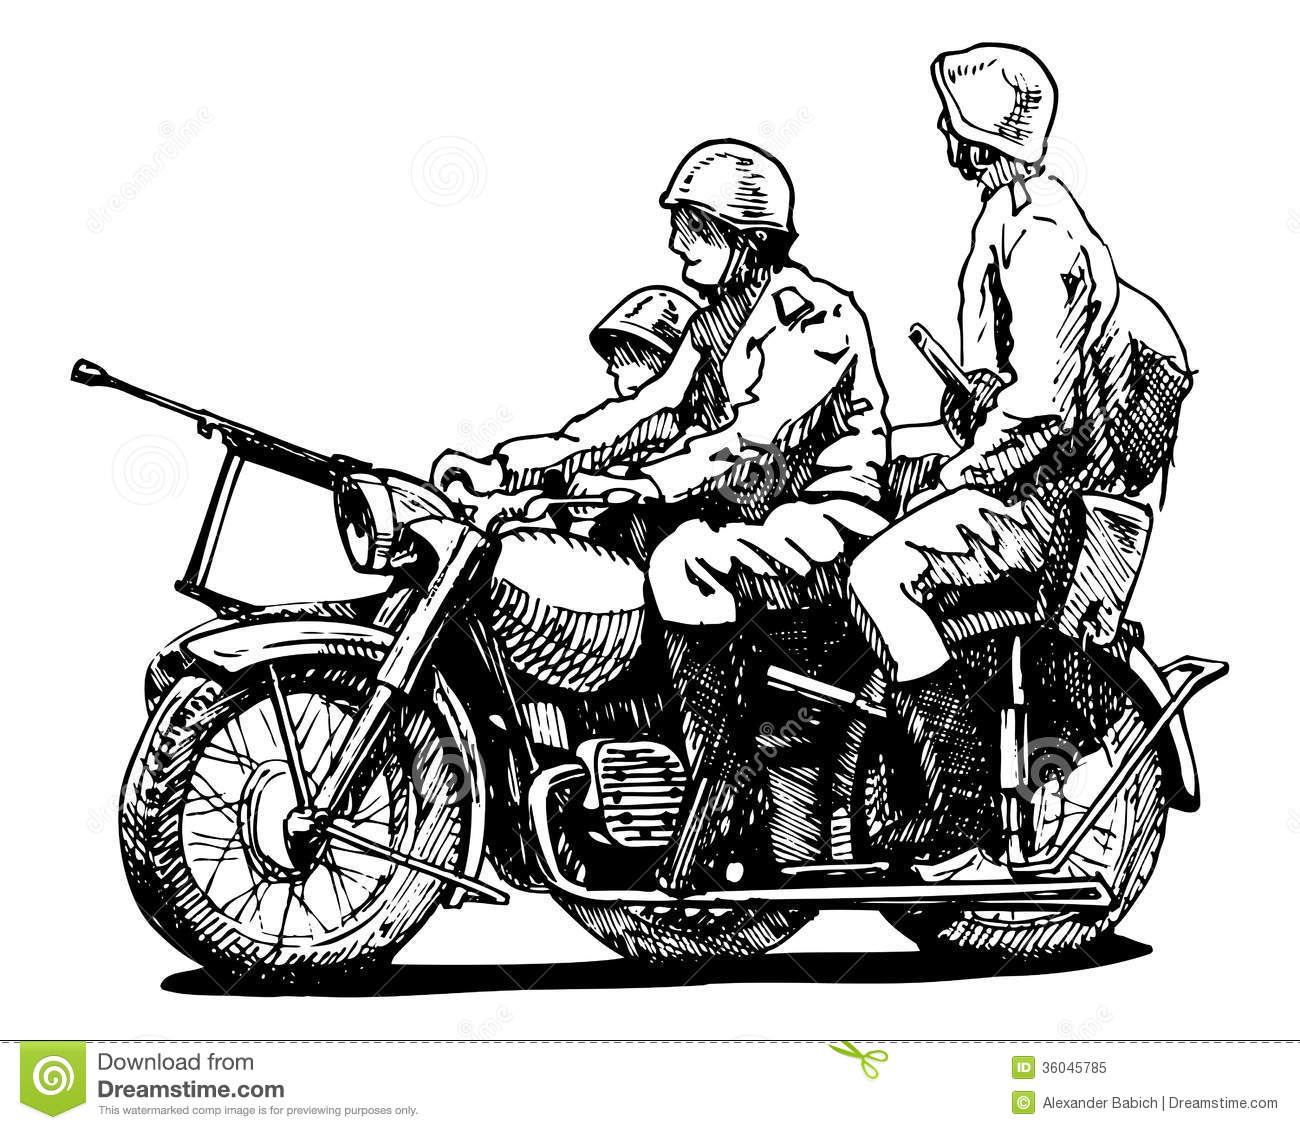 Royalty Free Stock Image Barber Icon Creative Design Image34762876 further Royalty Free Stock Photo Military Motorcycles Vector Drawing Stylized As Engraving Image36045785 furthermore Tv Clipart Black And White 12147 additionally Us States Outline Cliparts moreover Royalty Free Stock Images Black White Roses Border Design Image4492009. on free vector map of us states